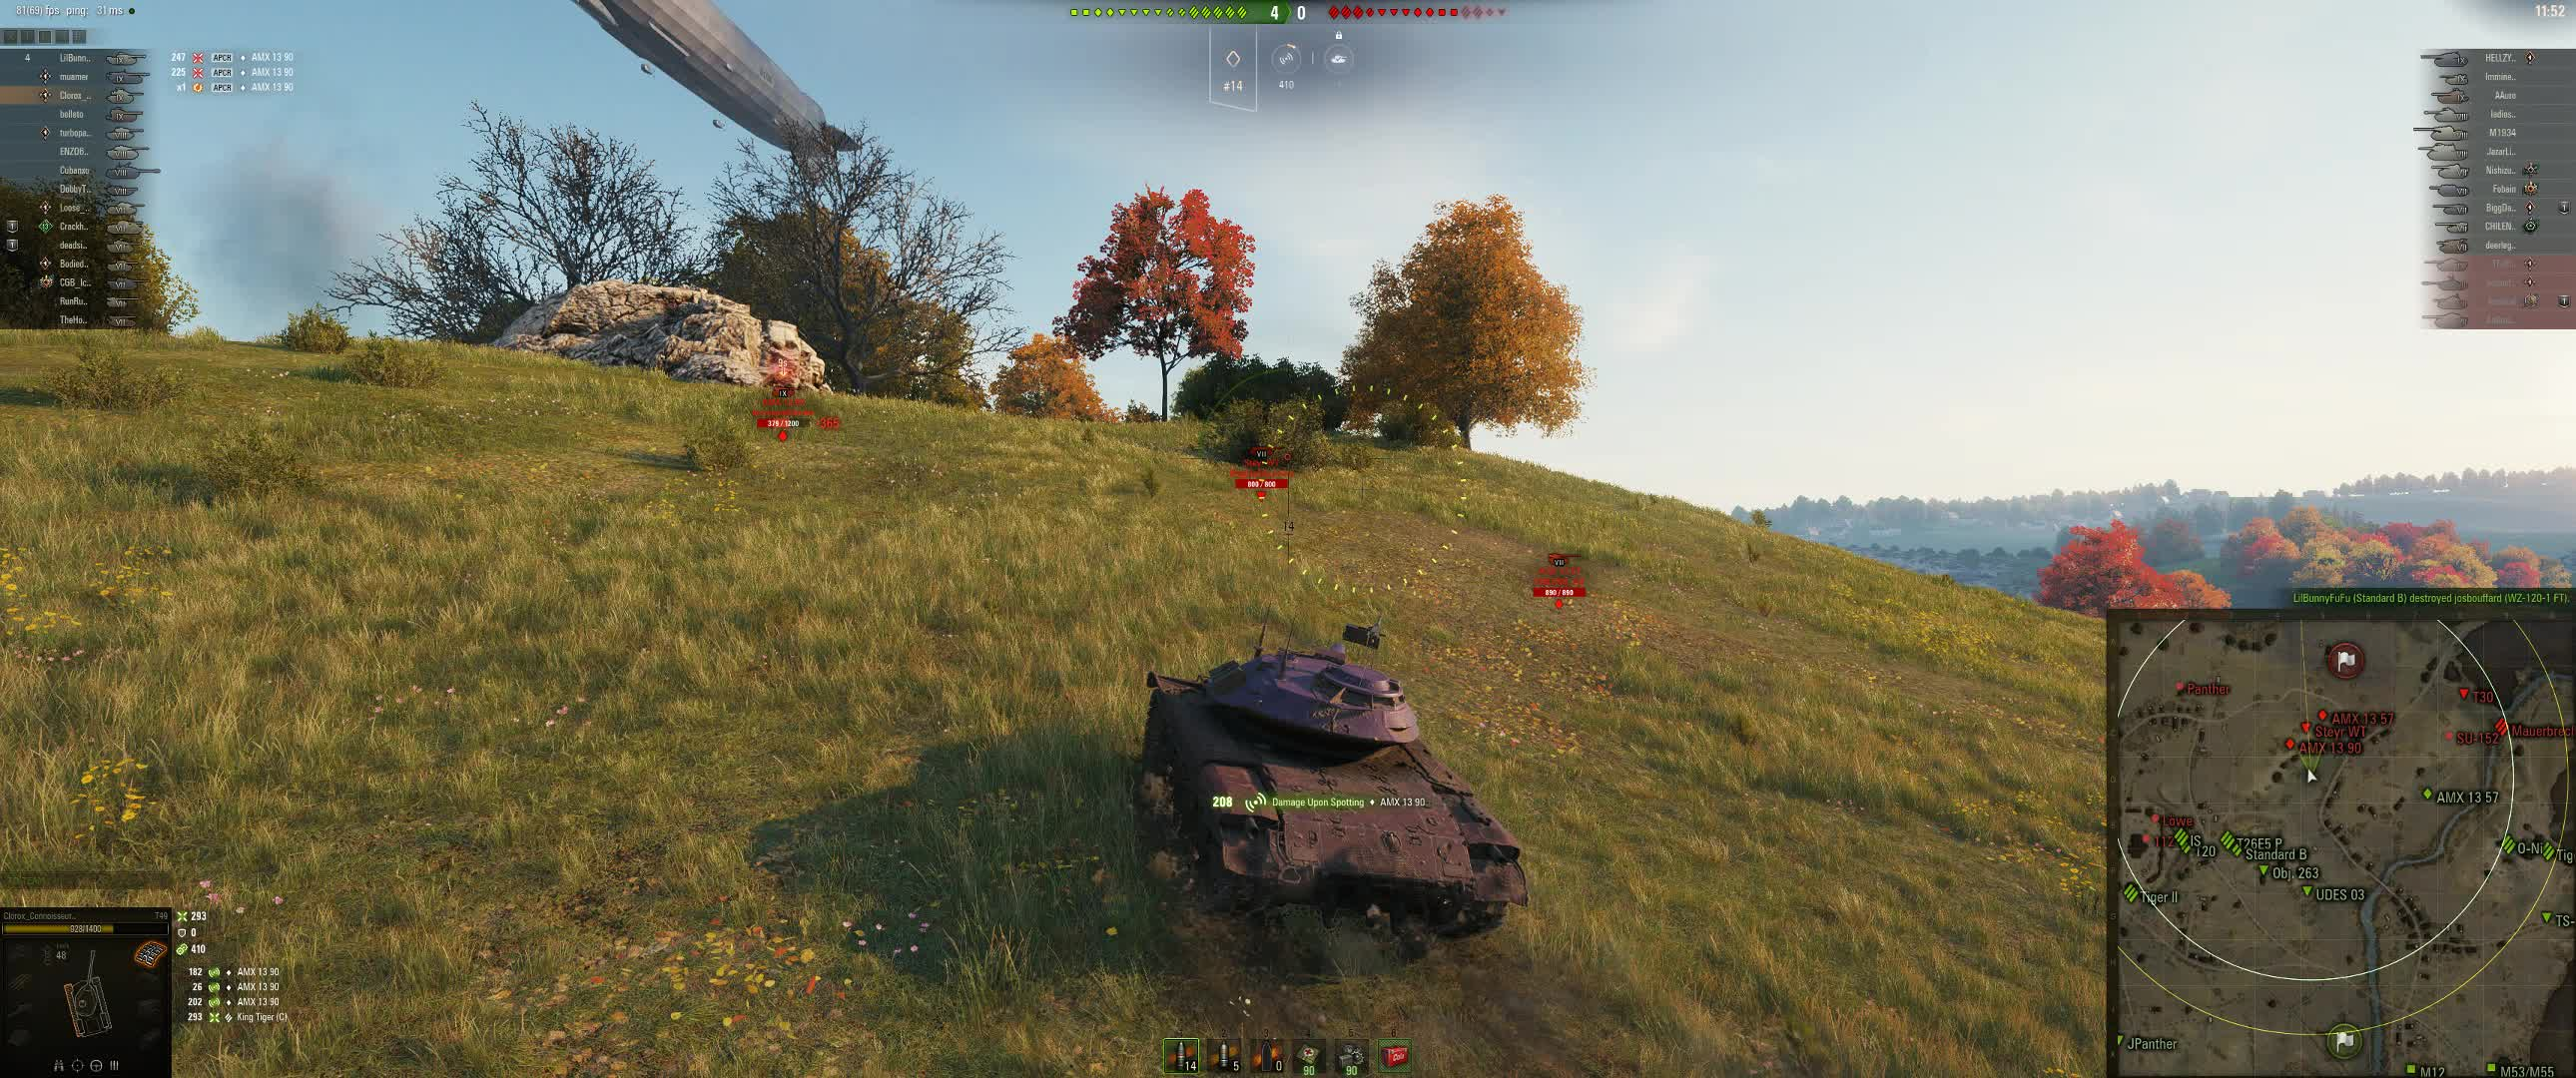 derpcart, t49, world of tanks, Petite French Thot absolutely deleted by thicc American chode GIFs